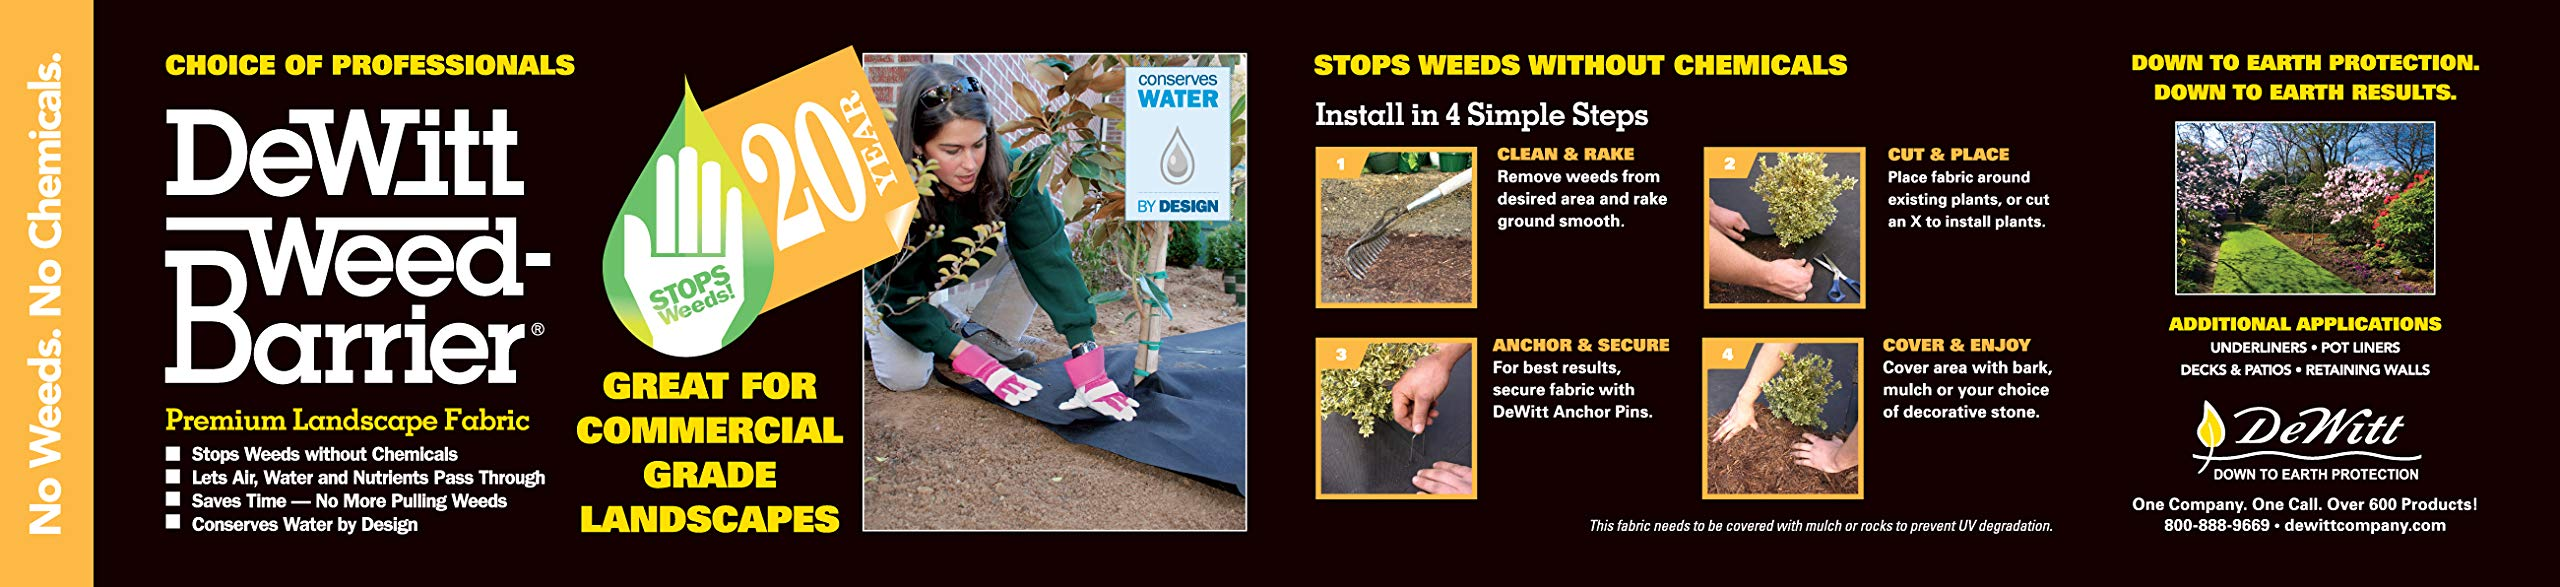 Dewitt 3-by-100-Feet 4.1-Ounce 20-Year Weed Barrier Fabric